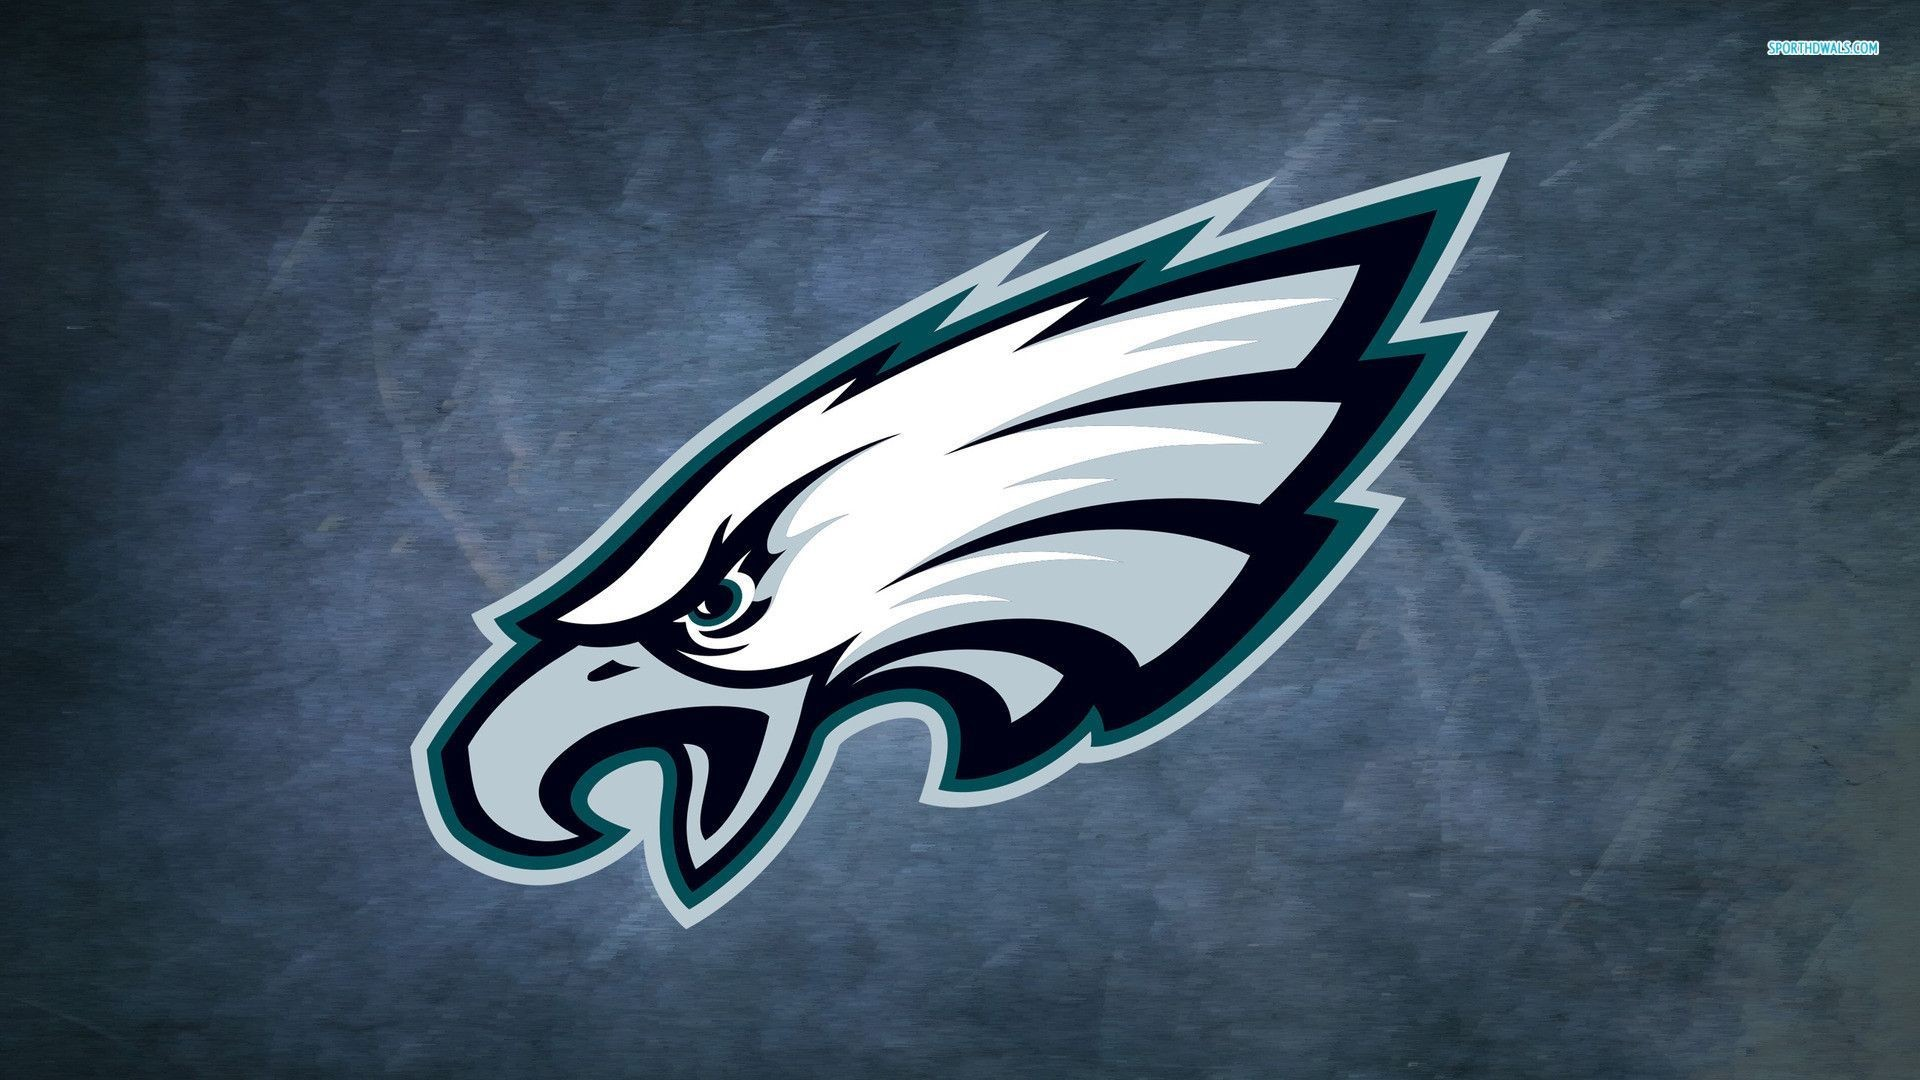 Res: 1920x1080, Philadelphia Eagles Wallpapers PC iPhone Android